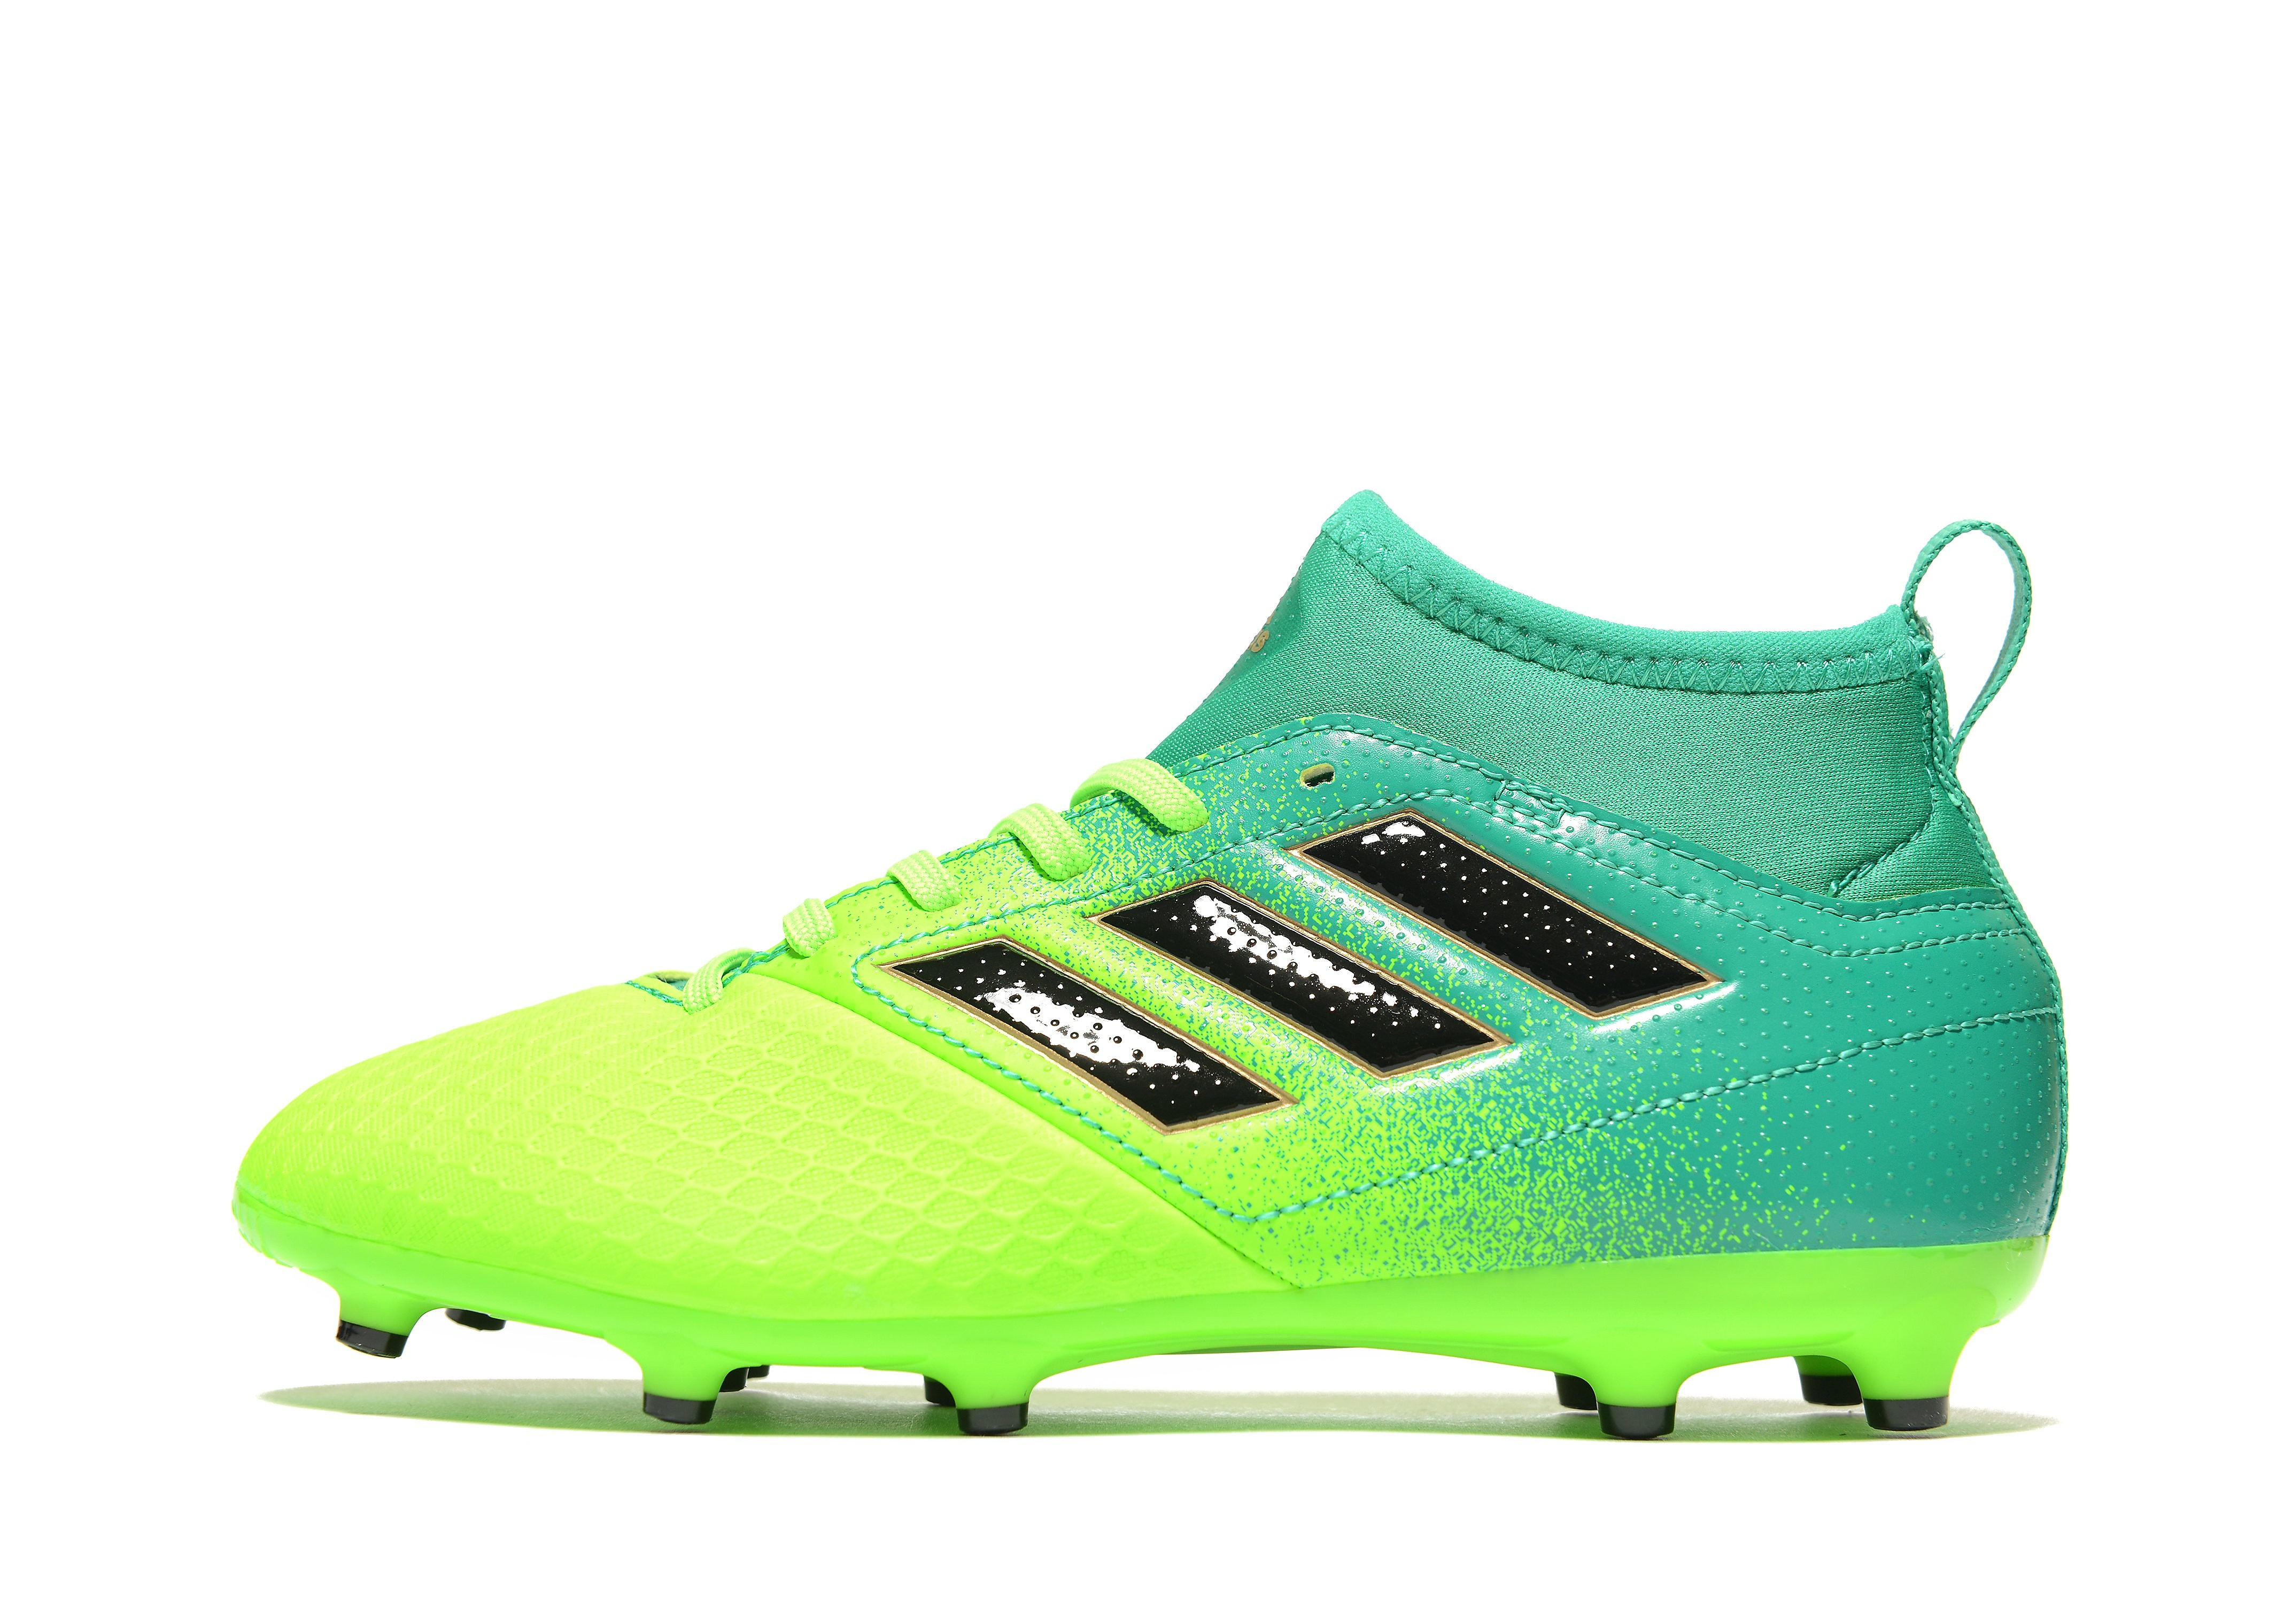 adidas Turbocharged Ace 17.3 Turf Children